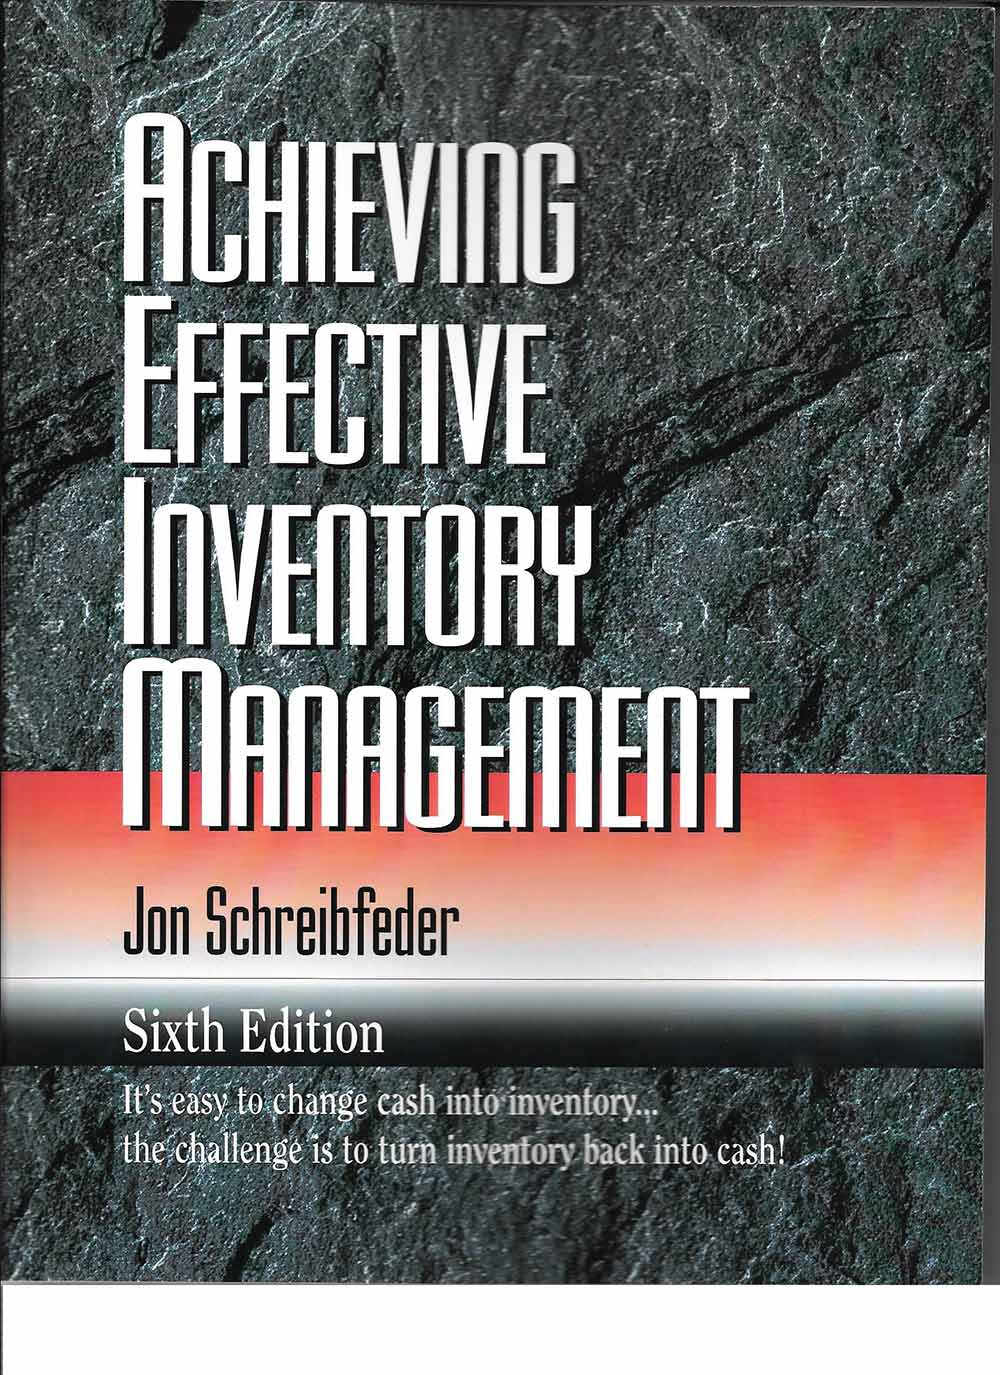 Books | Effective Inventory Management